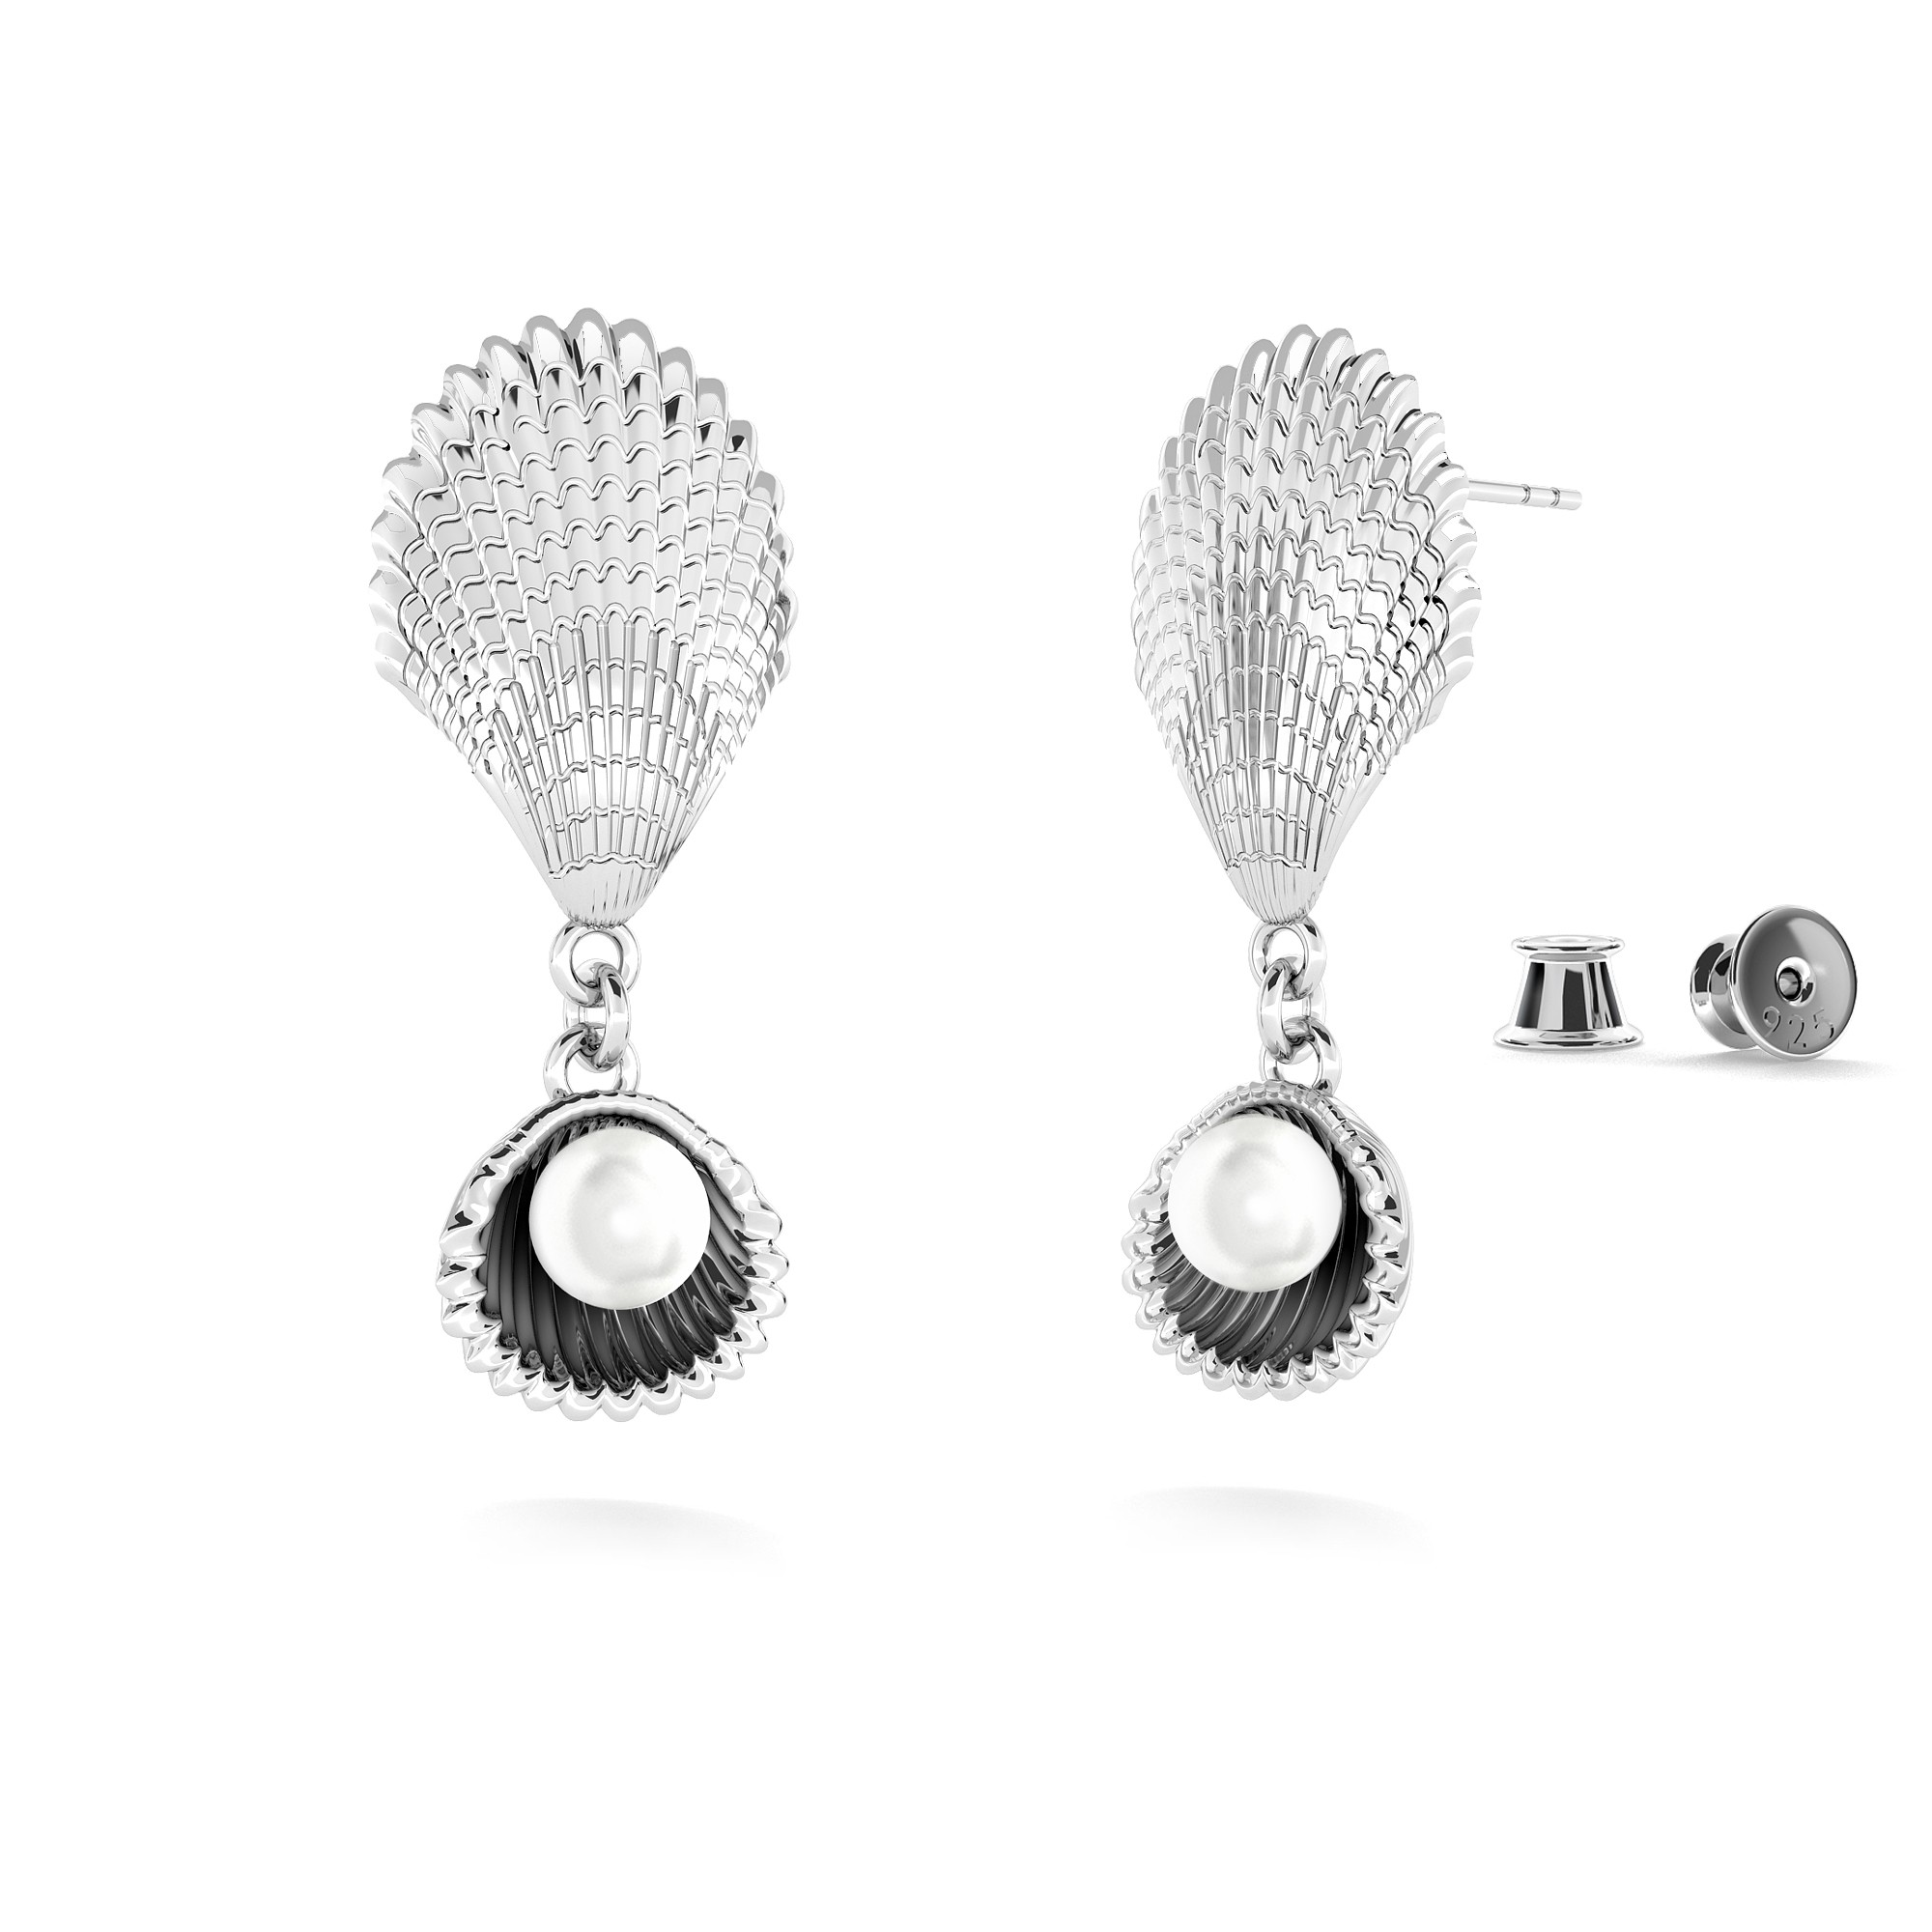 Earring - shells with pearl, MON DÉFI sterling silver 925